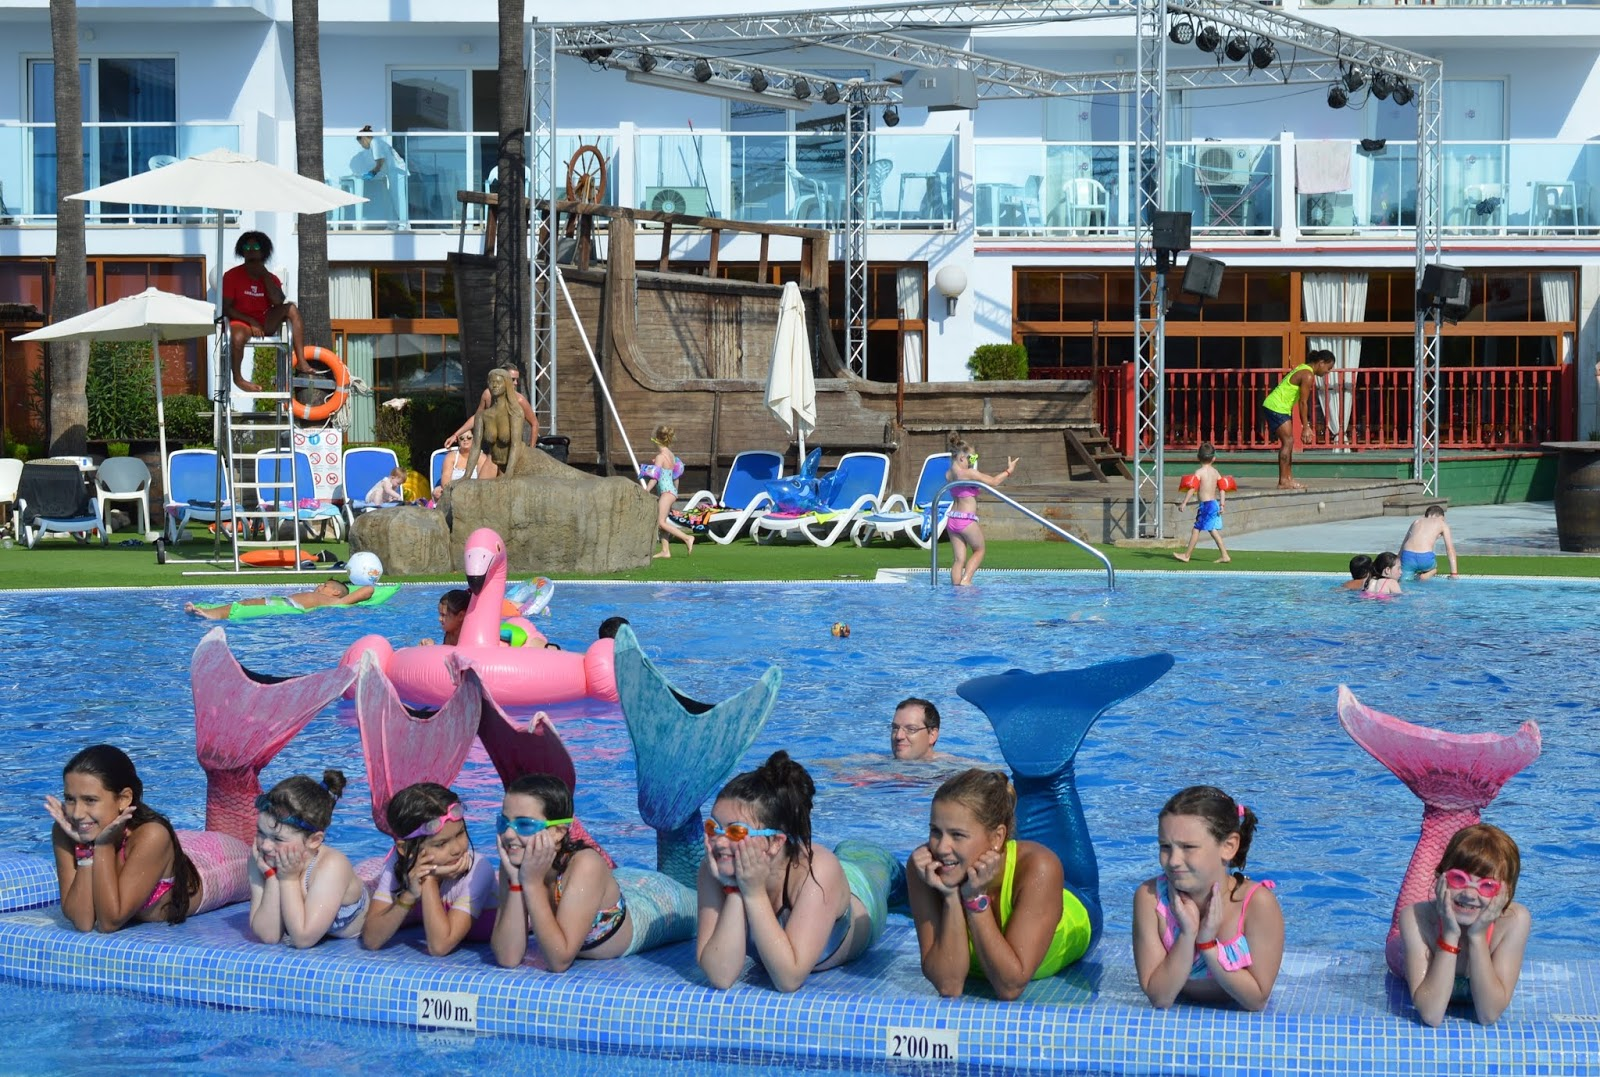 Pirate Swimming Pools and Mermaid Lessons at Pirates Village, Majorca - mermaids posing